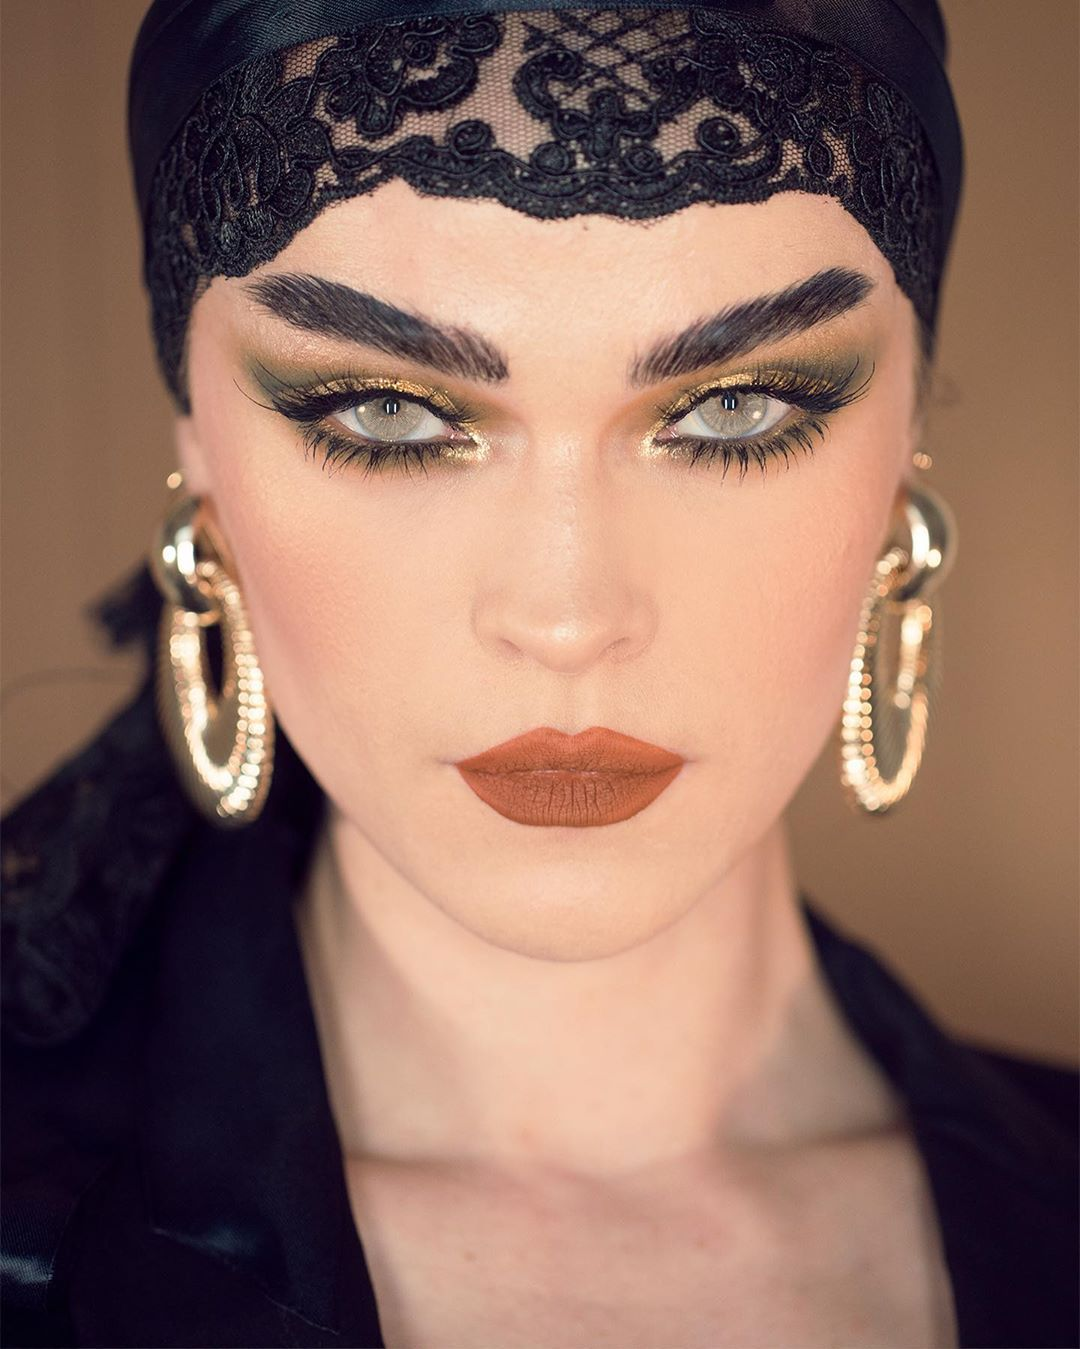 Pin by Glitter Gulp on Make up in 2020 Aesthetic makeup